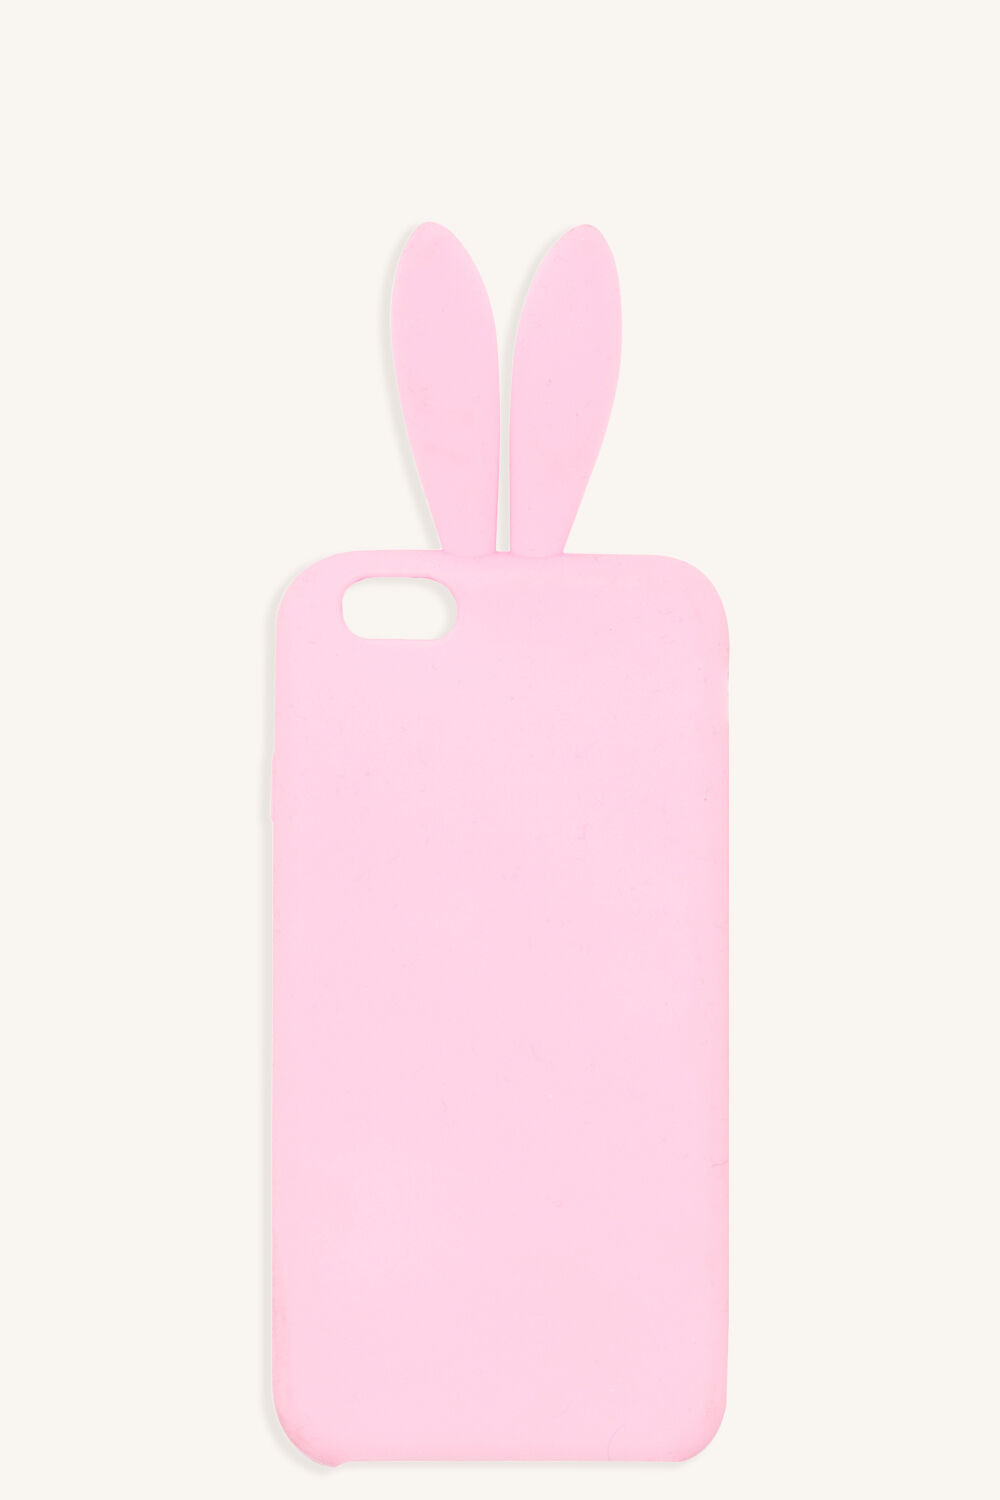 RABBIT PHONE COVER in colour PINK CARNATION